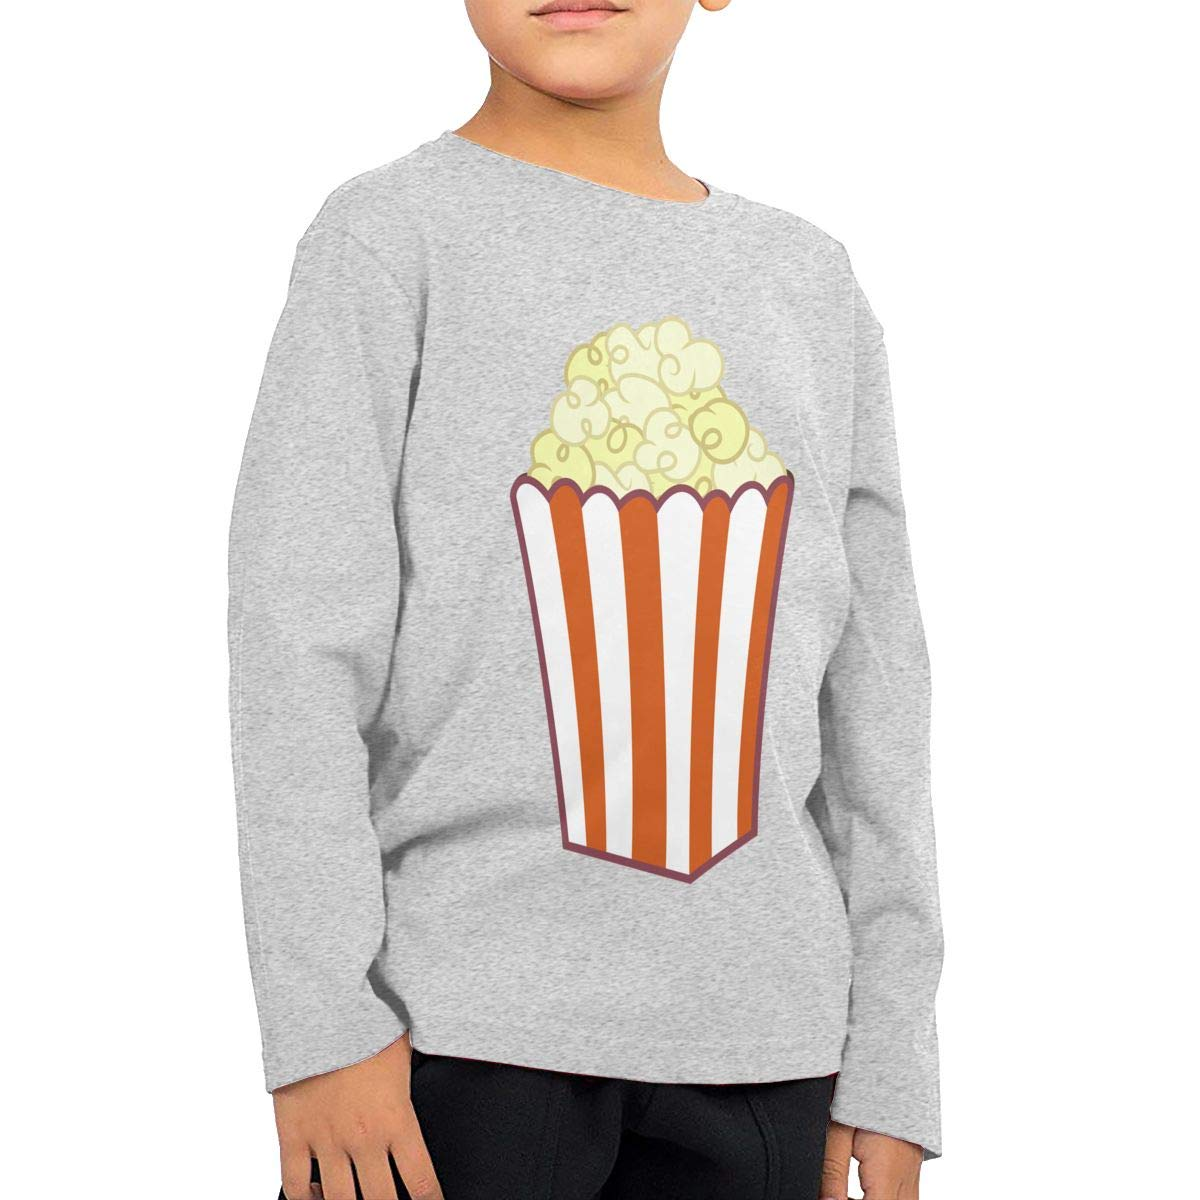 Climbing Clothes Set Popcorn Art Childrens Gray Cotton Long Sleeve Round Neck T-Shirt for Boy Or Girl